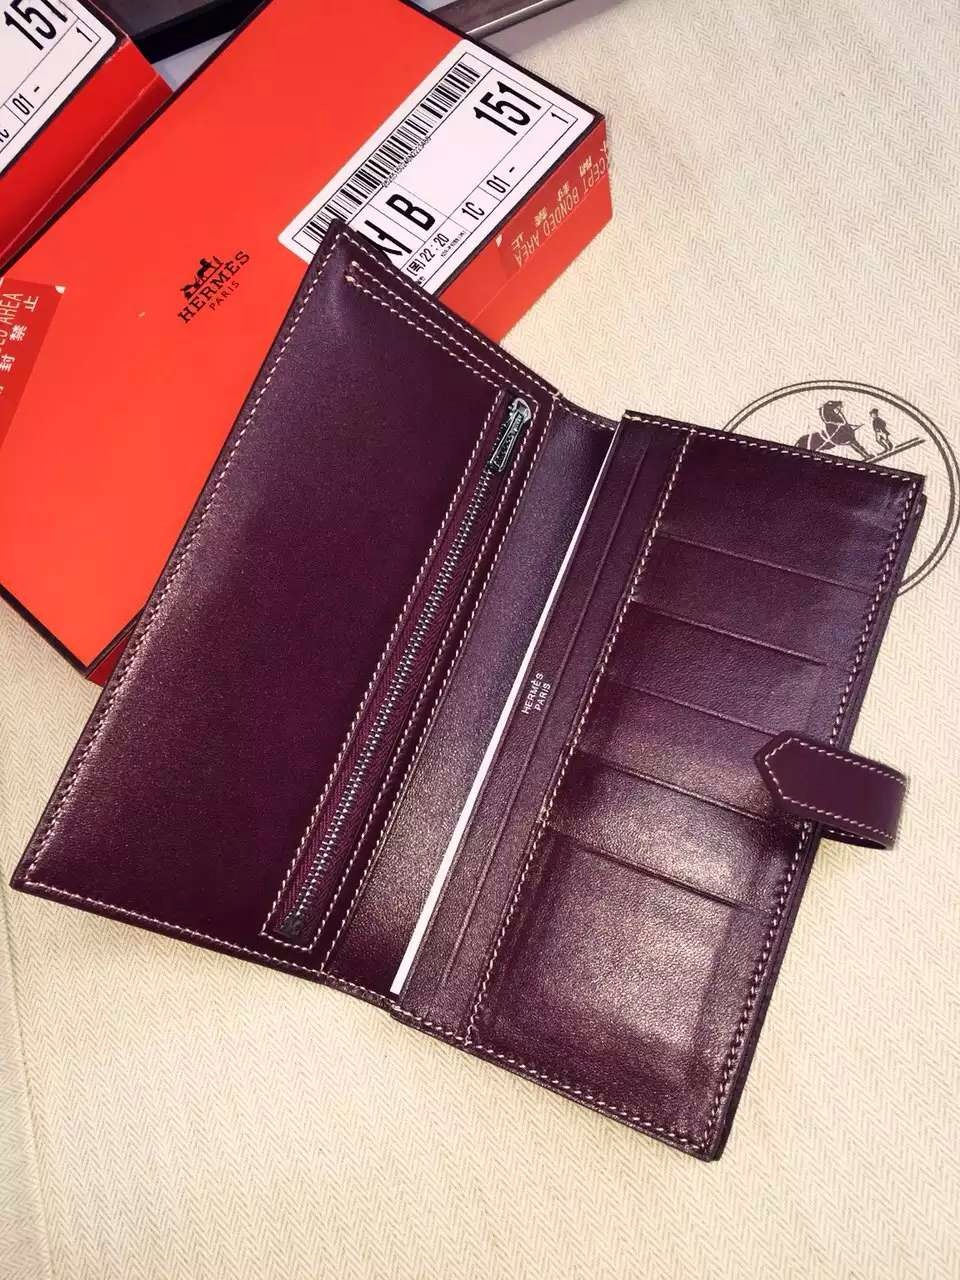 Hand Stitching Hermes Swift Leather Bean Wallet Long Purse in CK57 Bordeaux 19CM